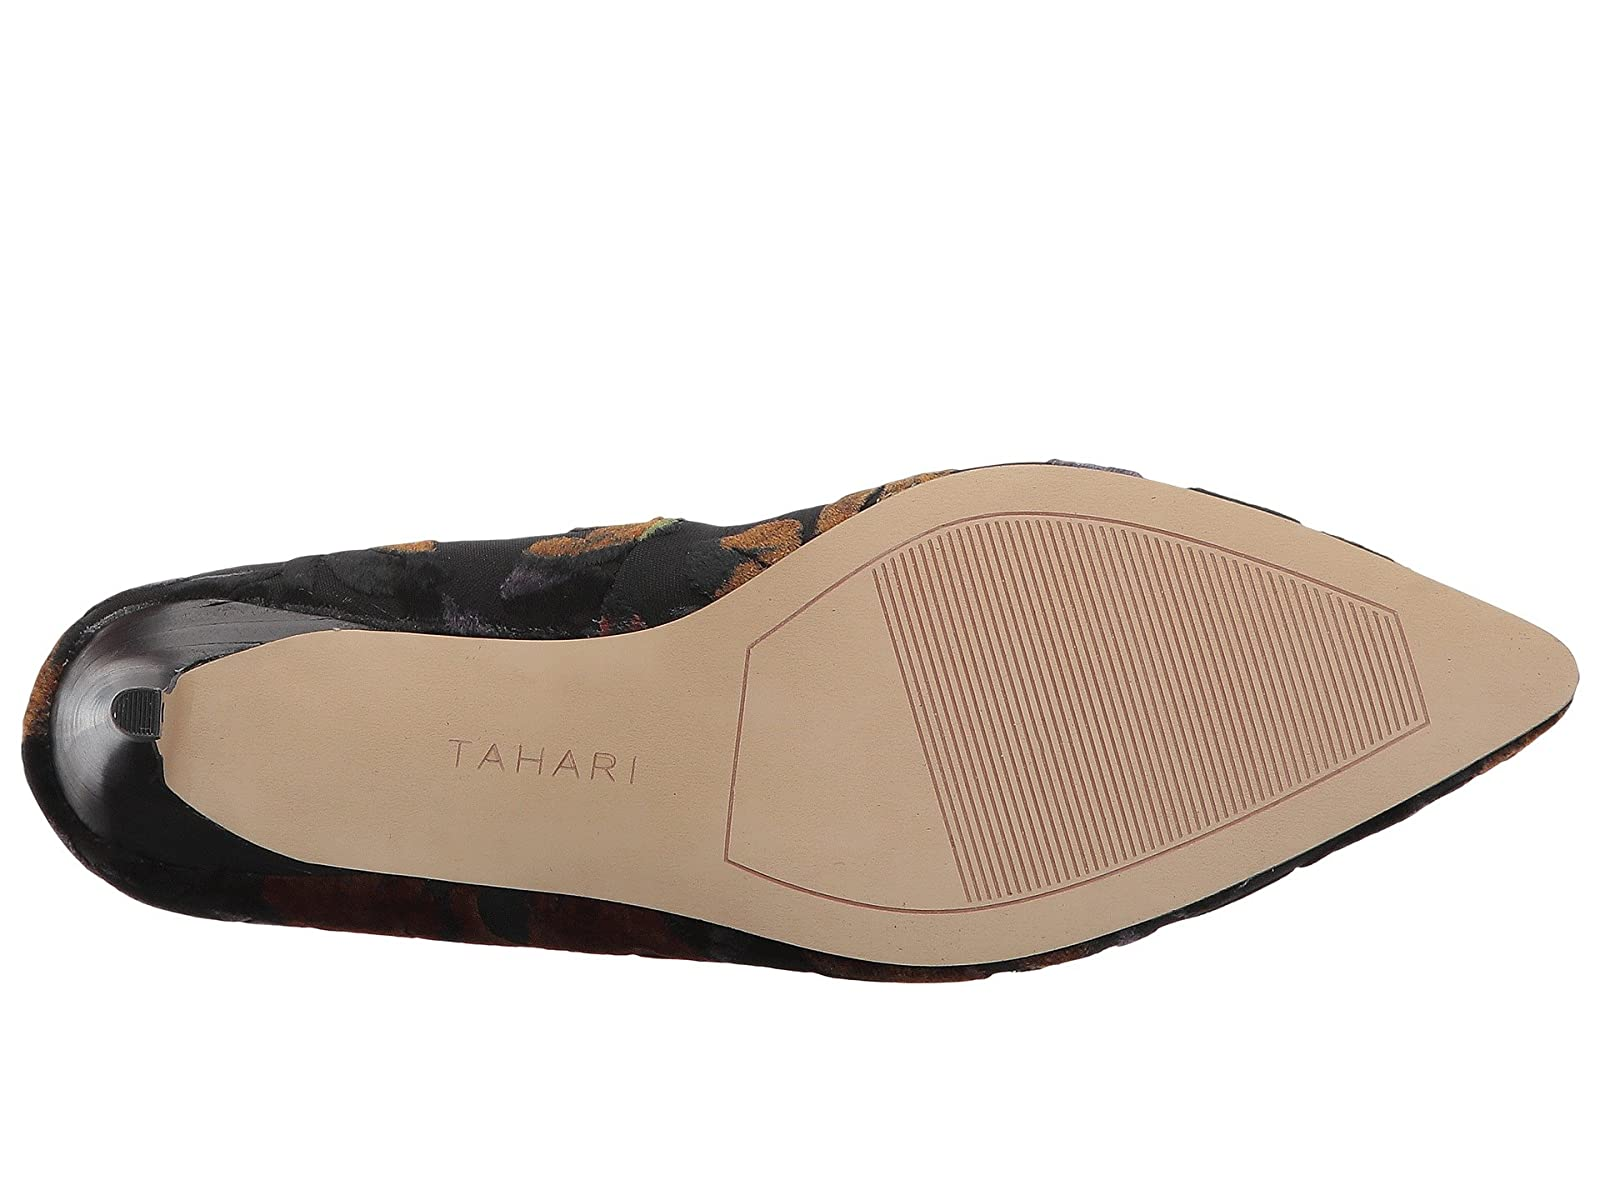 Gentlemen/Ladies Tahari Gia Gia Gia  Atmospheric Simplicity f0050b